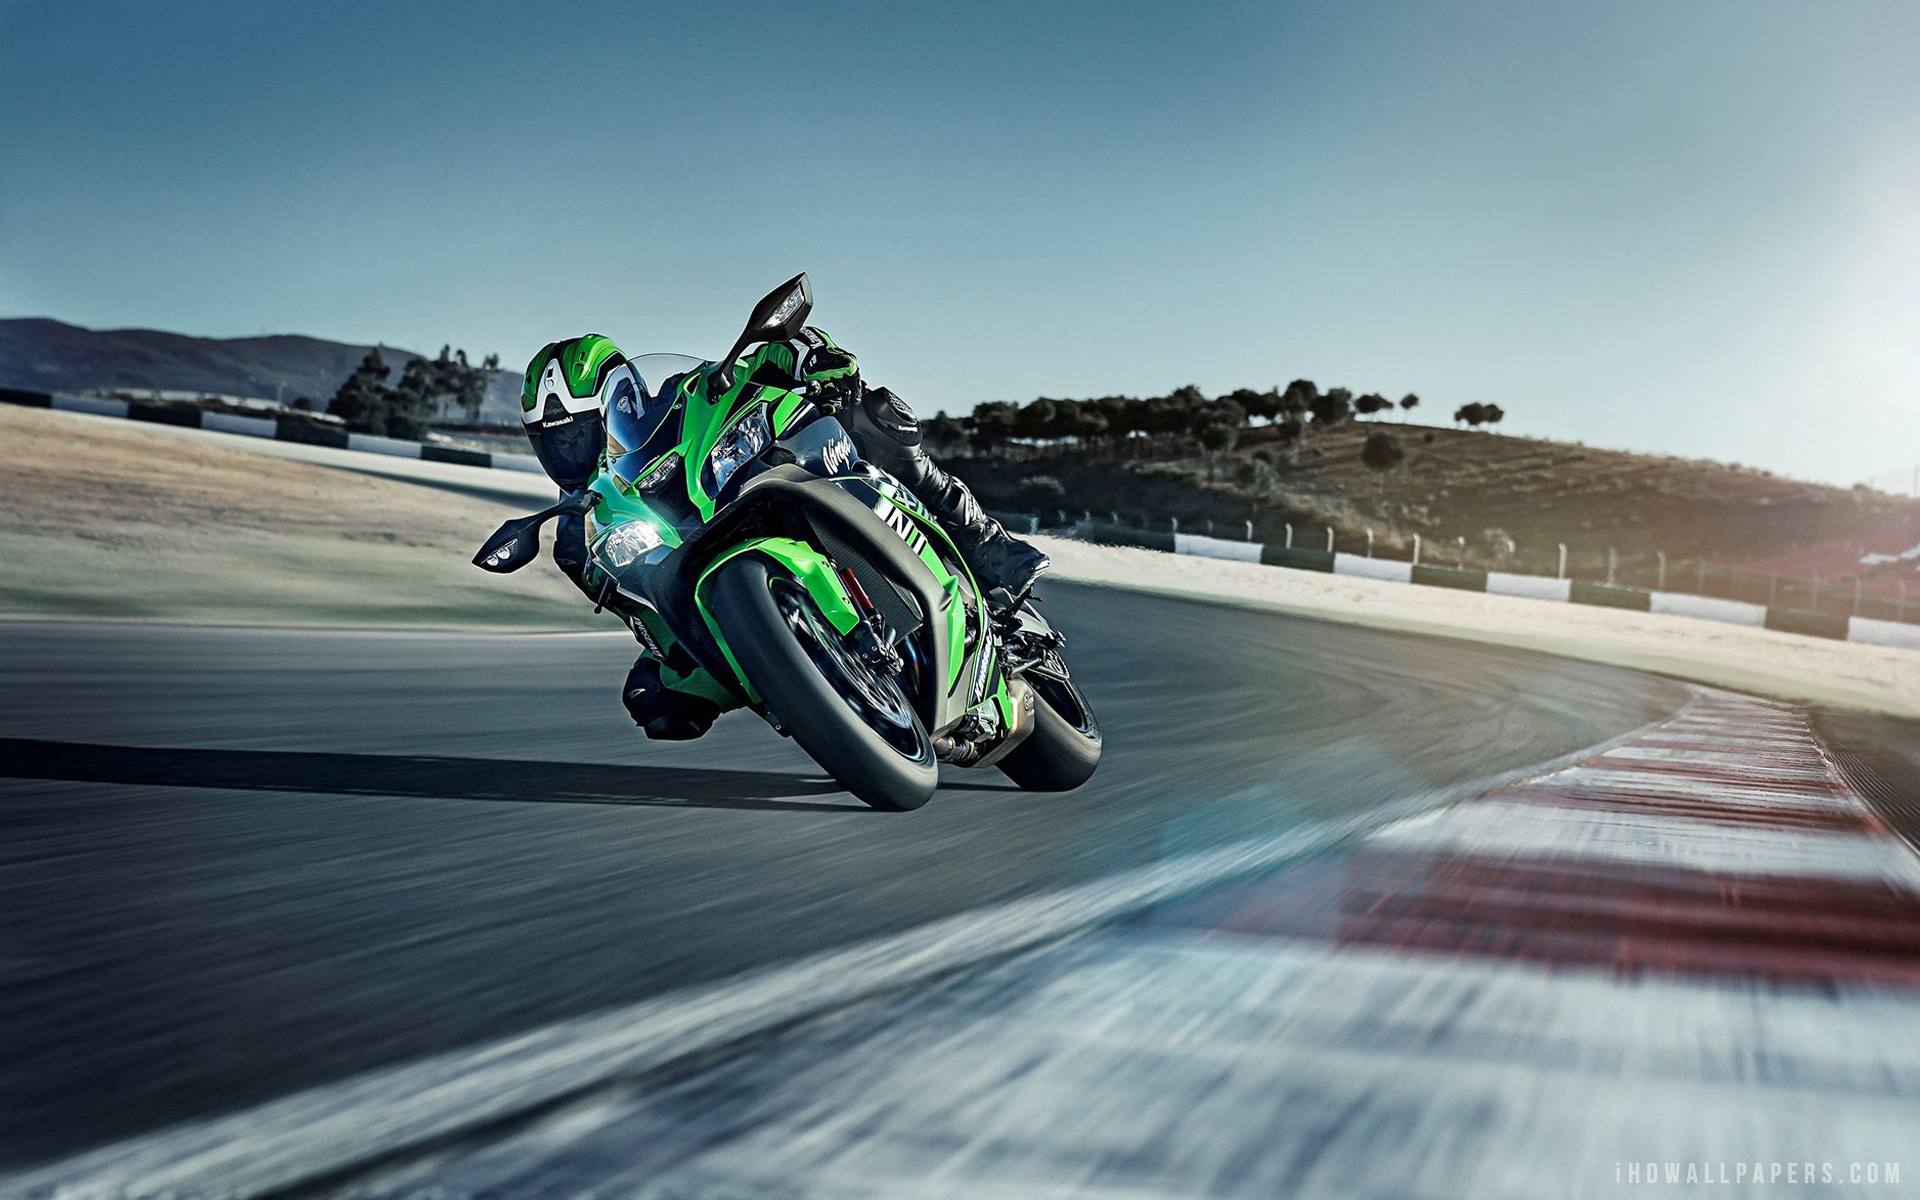 2016 Yamaha R1 Wallpaper   HD Wallpapers Backgrounds of Your Choice 1920x1200